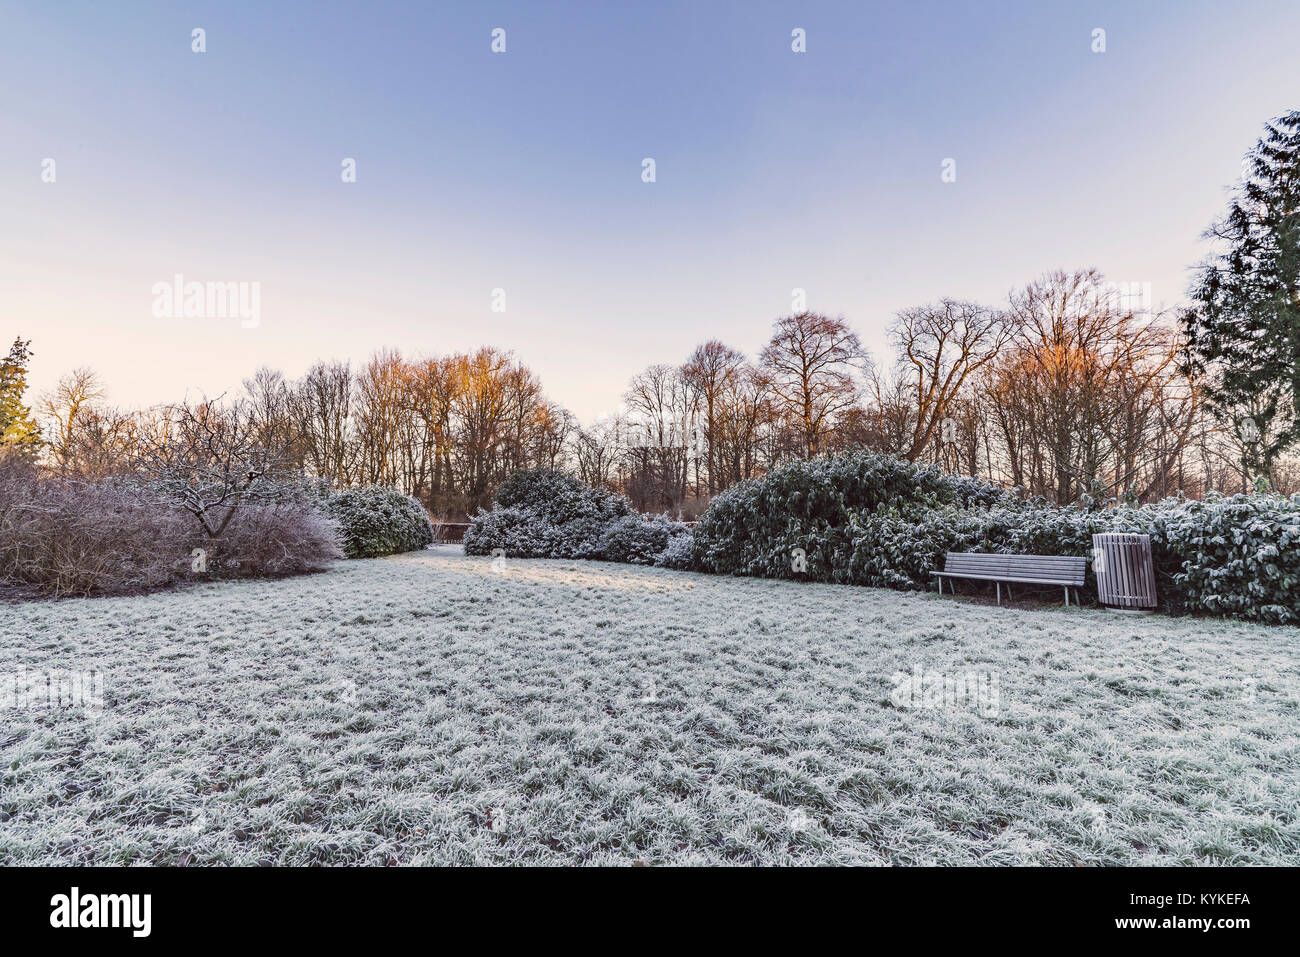 Park in the winter with a wooden bench and frost on plants and trees in the morning - Stock Image